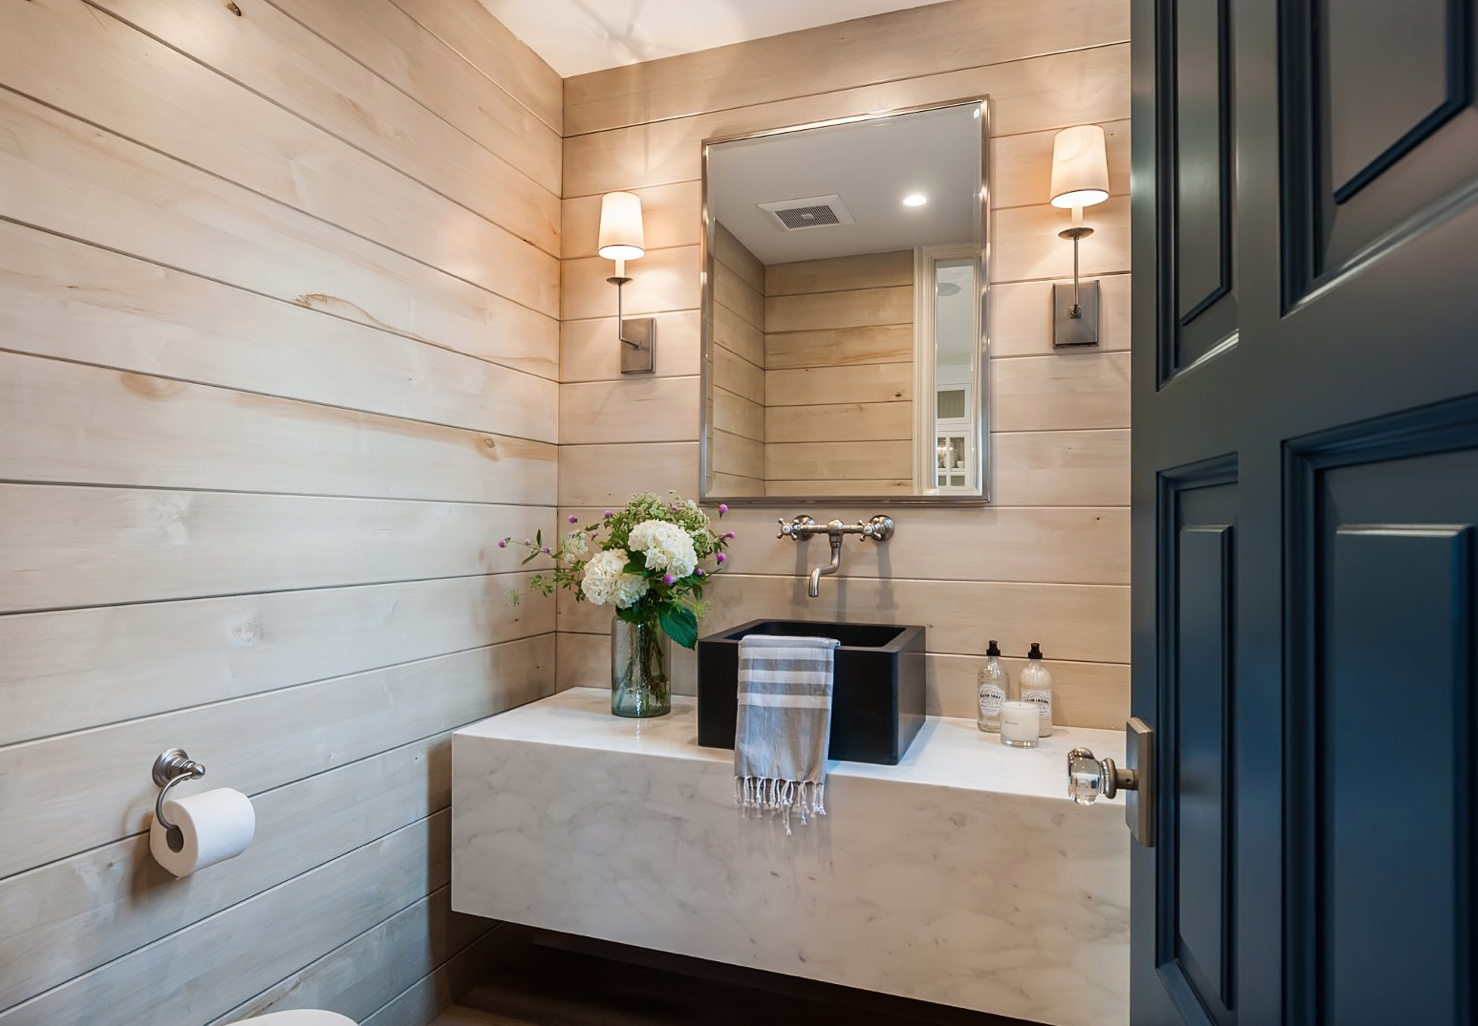 Coastal Tile Bathroom with Wooden Tile Walls